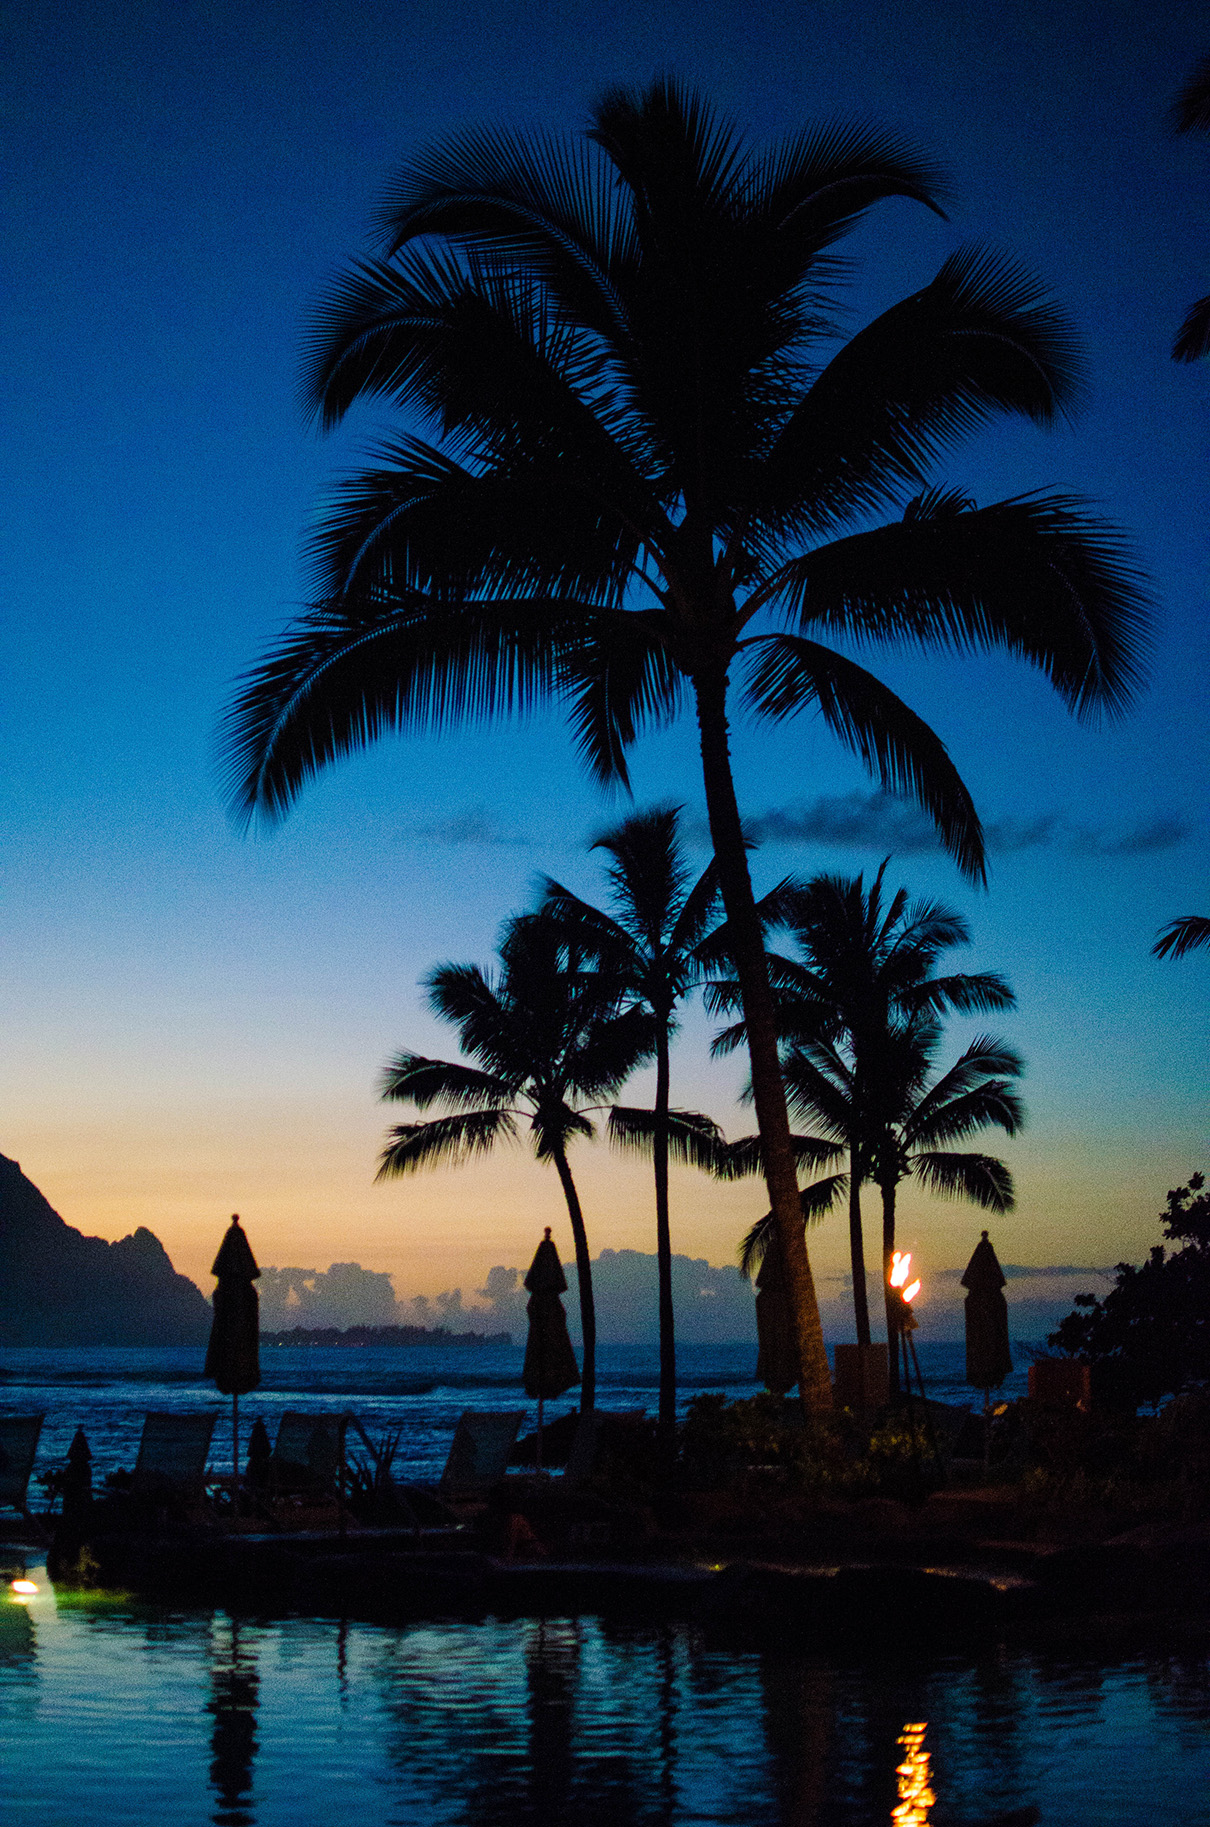 Sunset by the pool at The St. Regis Kauai